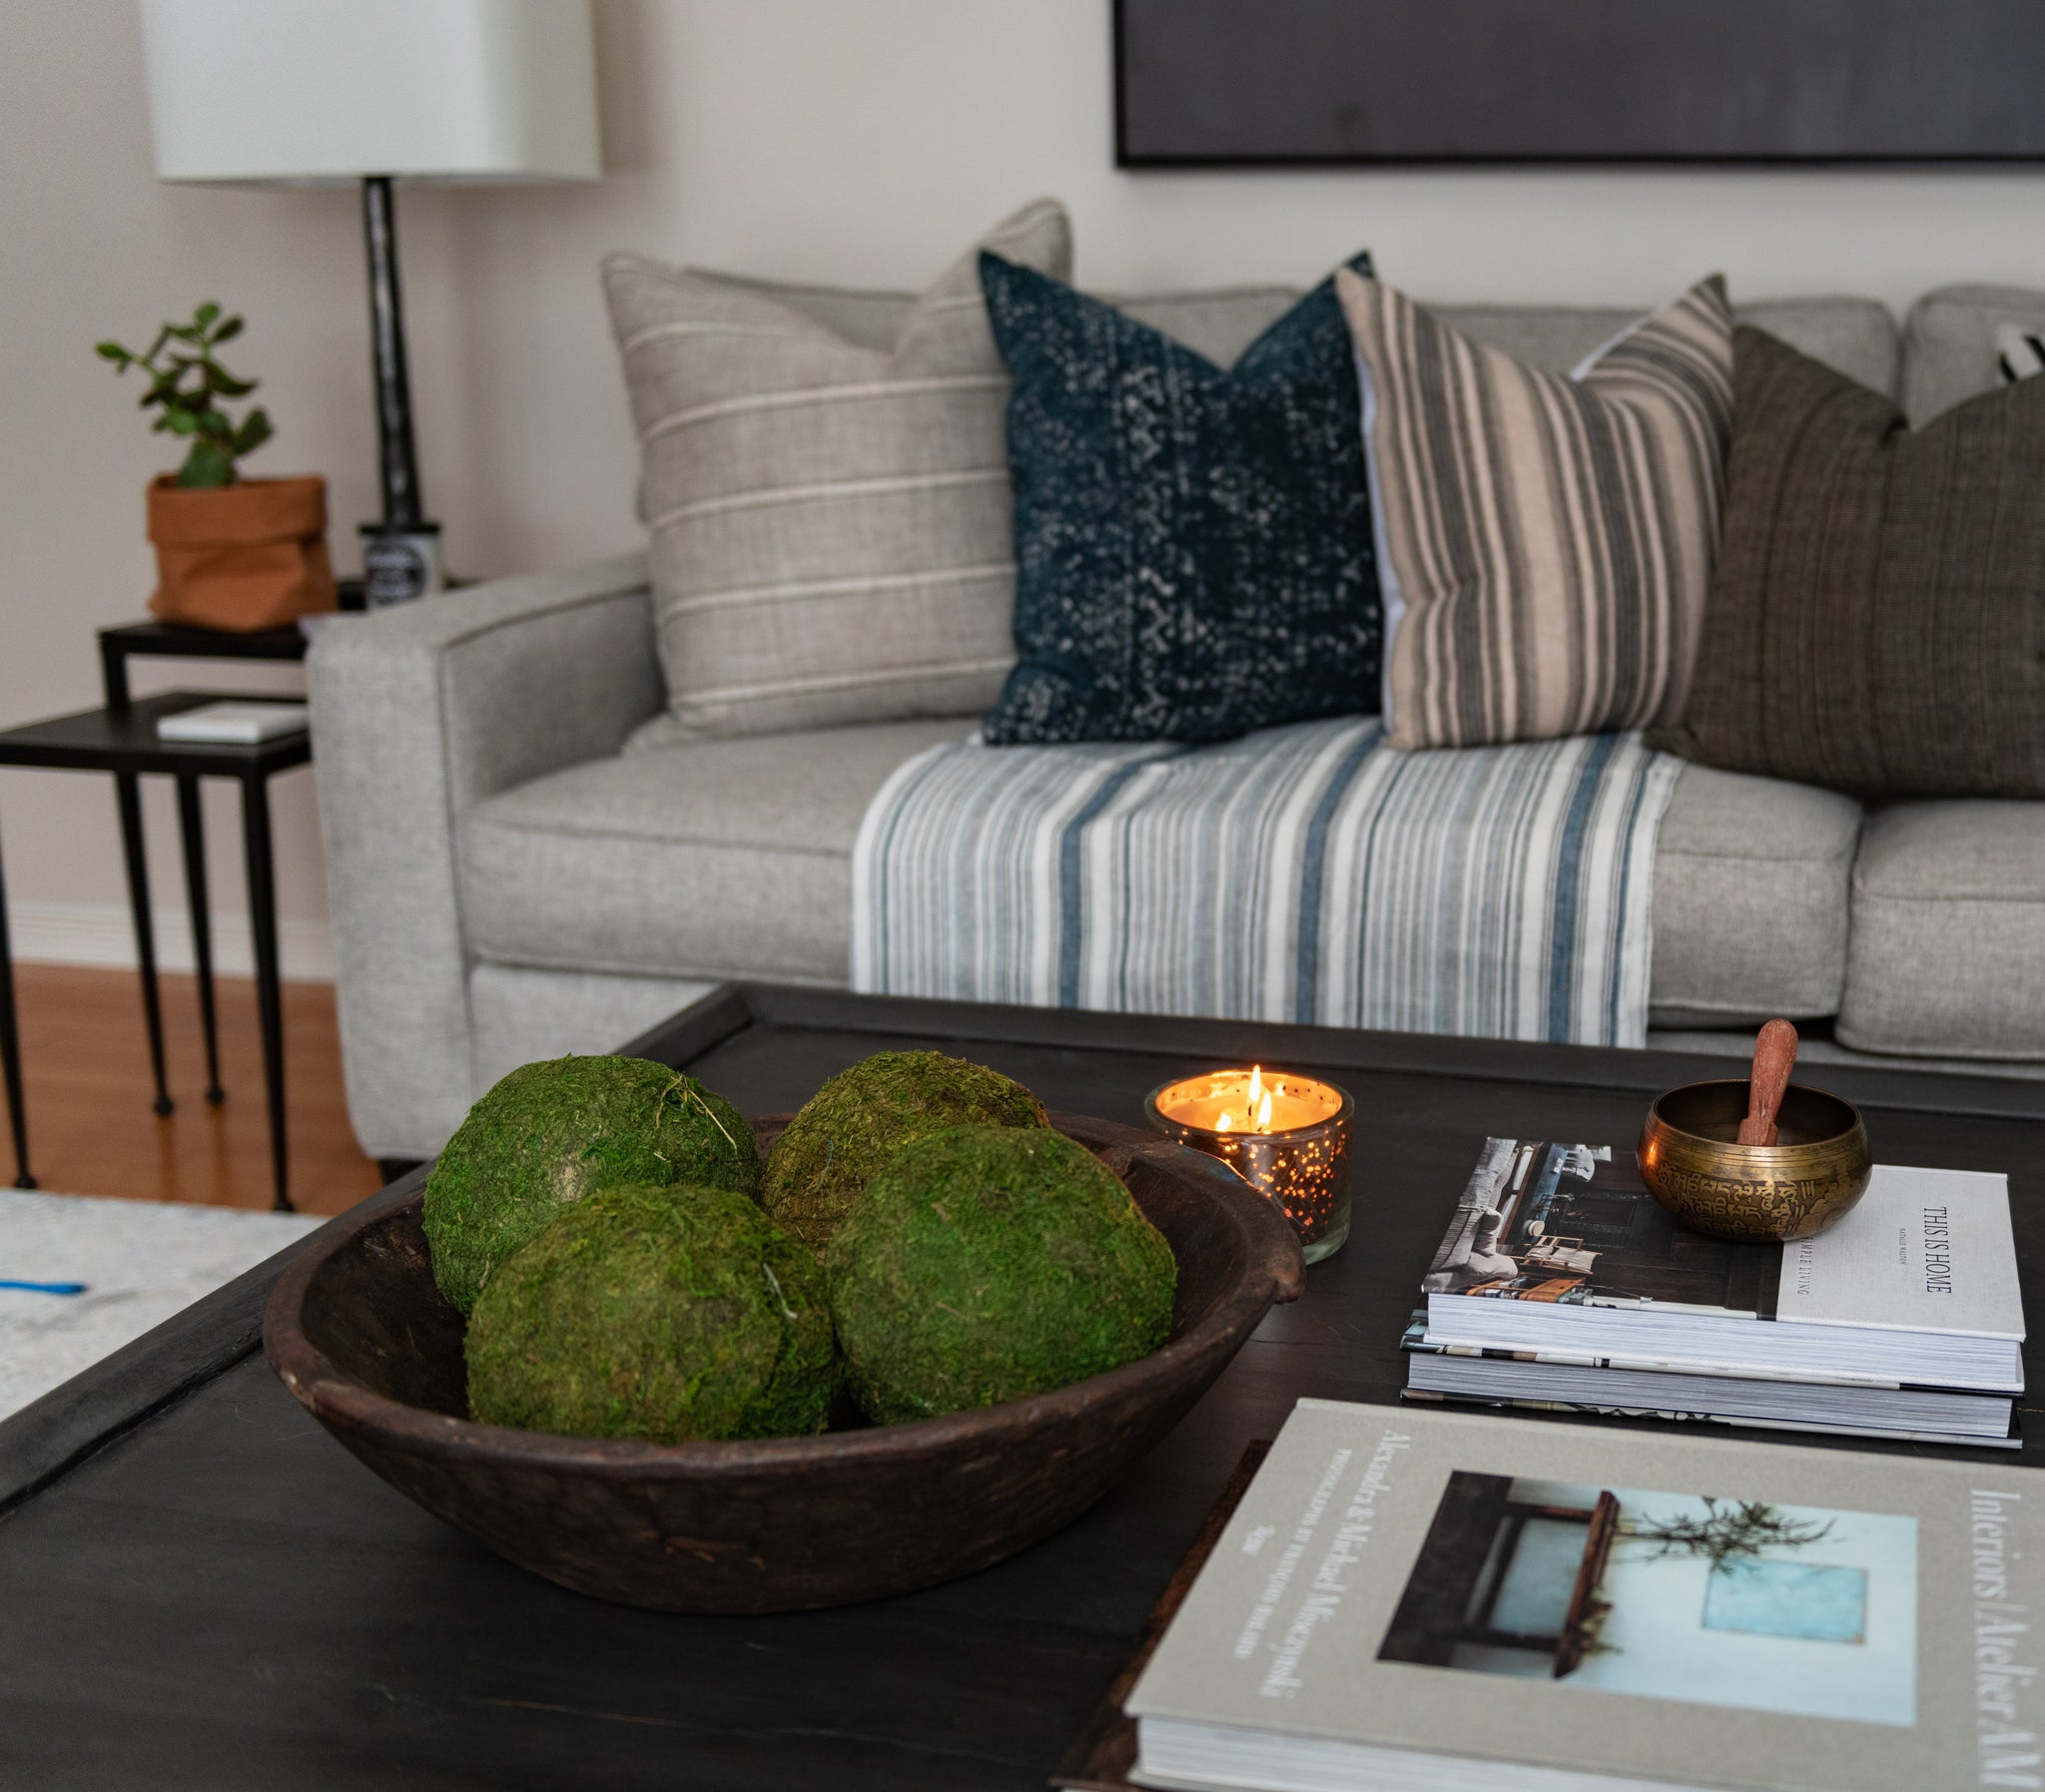 Living room coffee table close up interior design